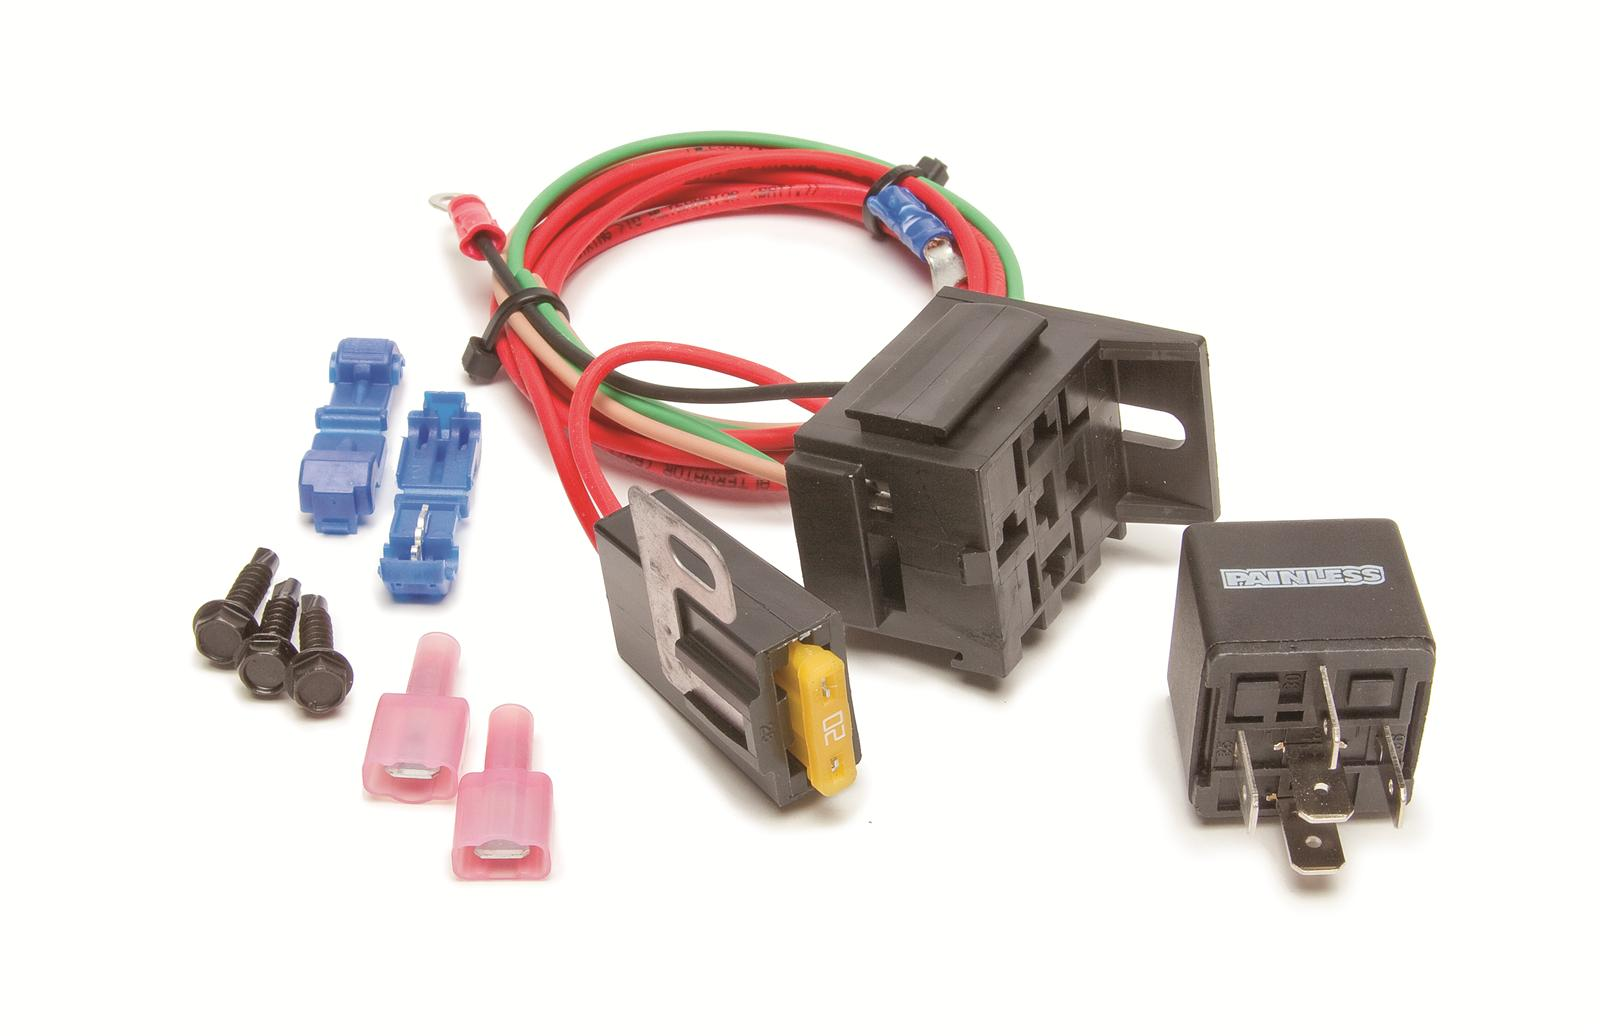 painless performance high-beam headlight relays 30802 - free shipping on  orders over $99 at summit racing